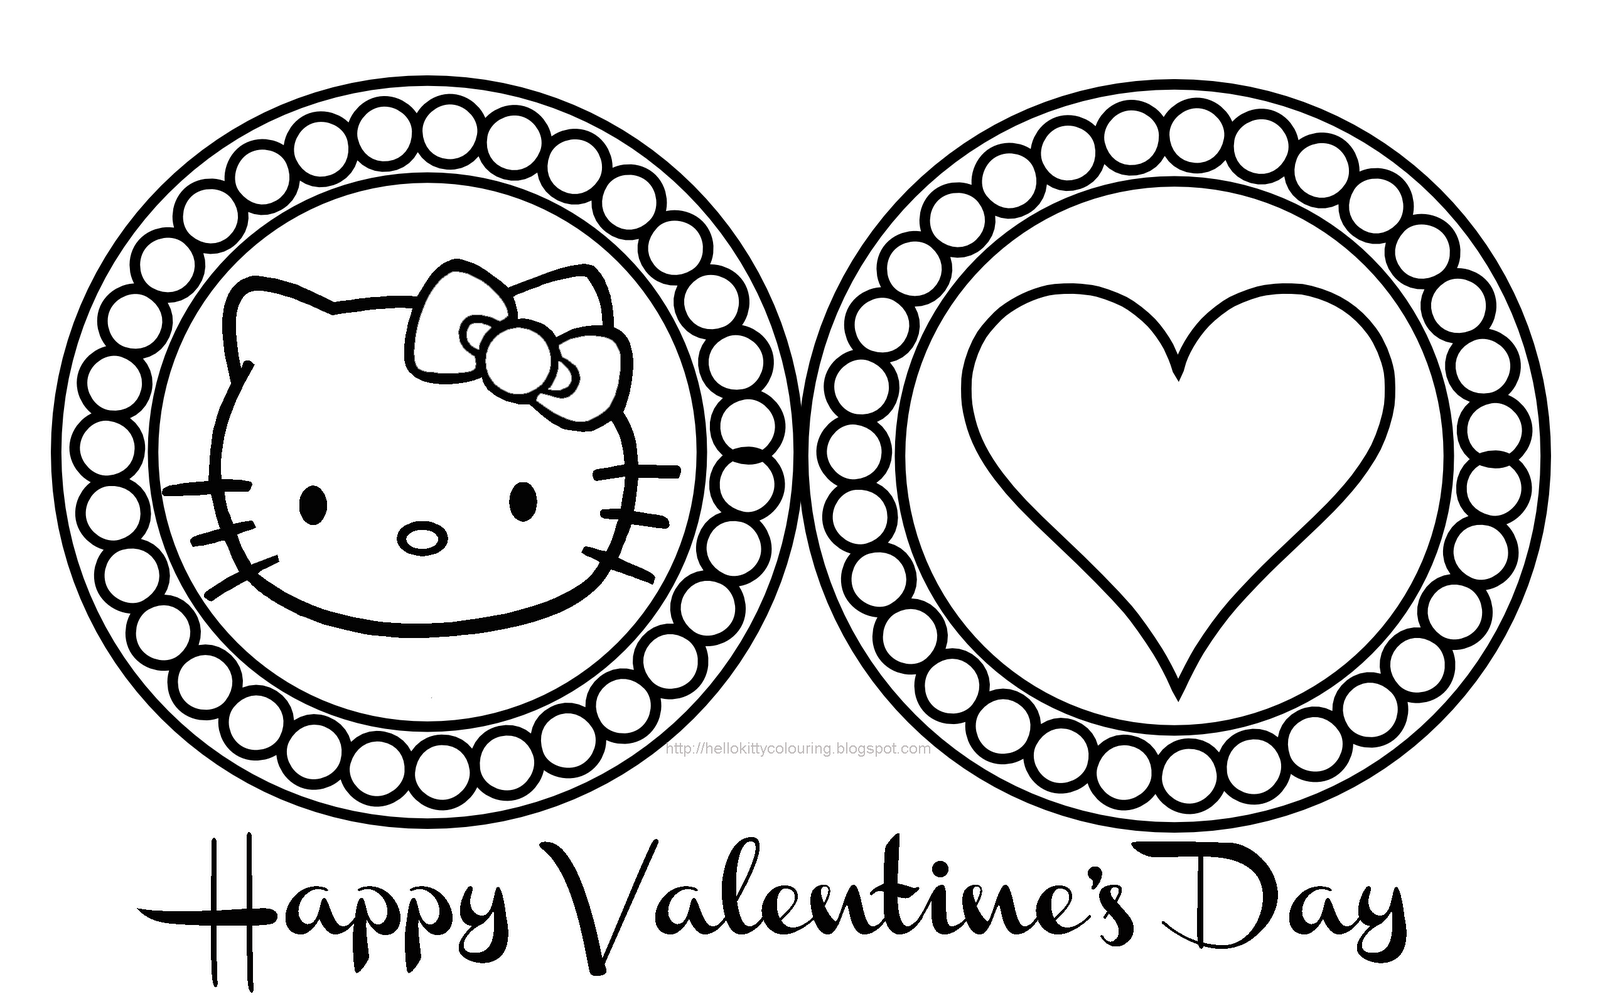 Valentines Day Coloring Pages Hello Kitty : Free hello kitty valentine coloring pages home